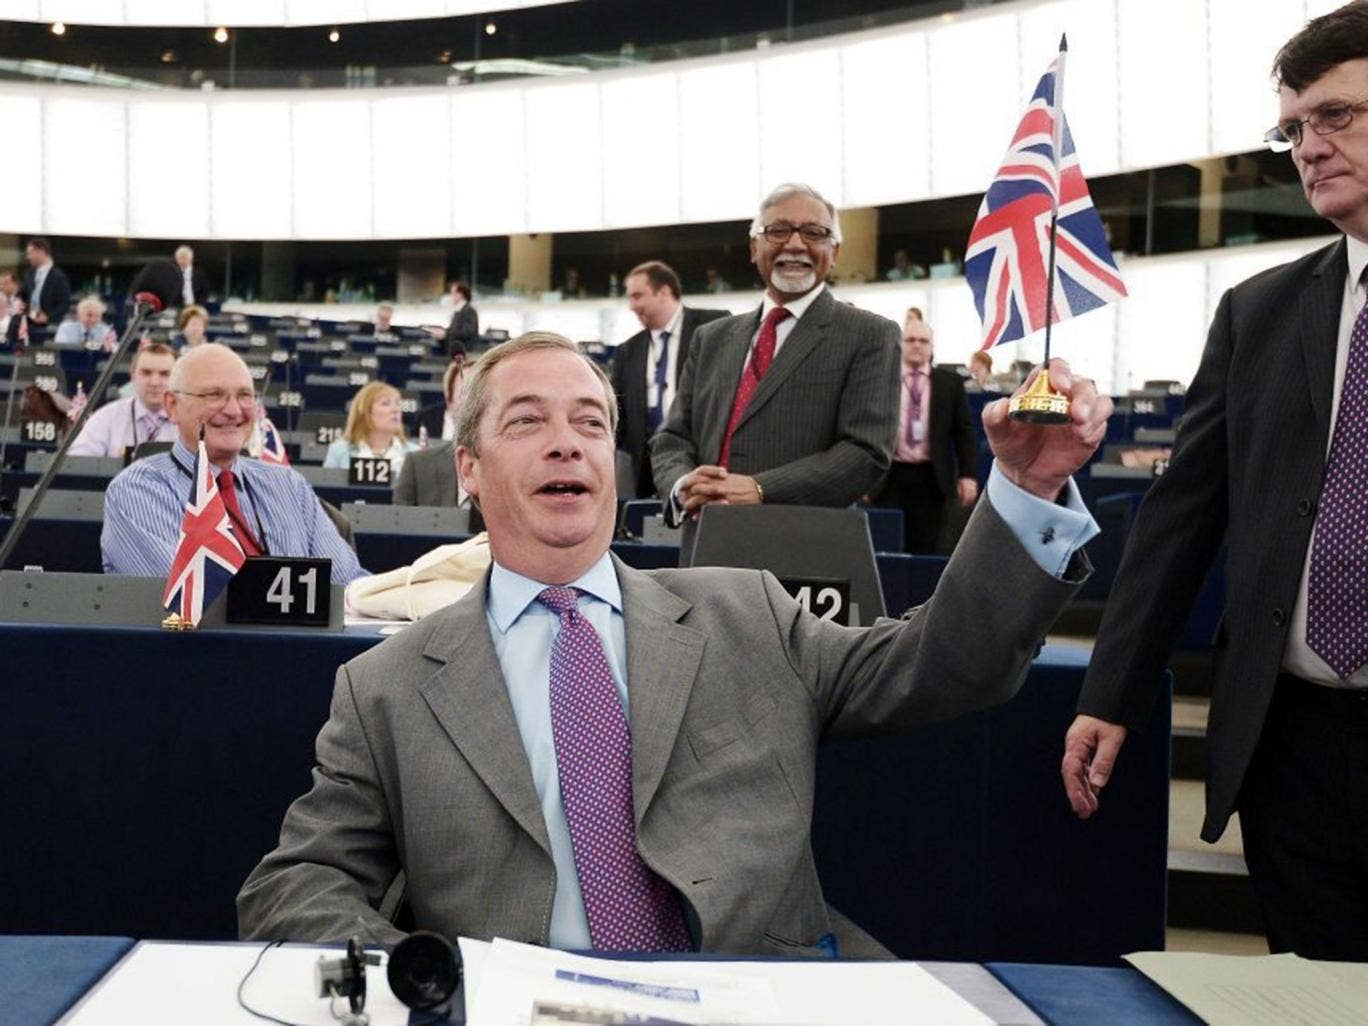 Ukip topped the poll in this year's European elections